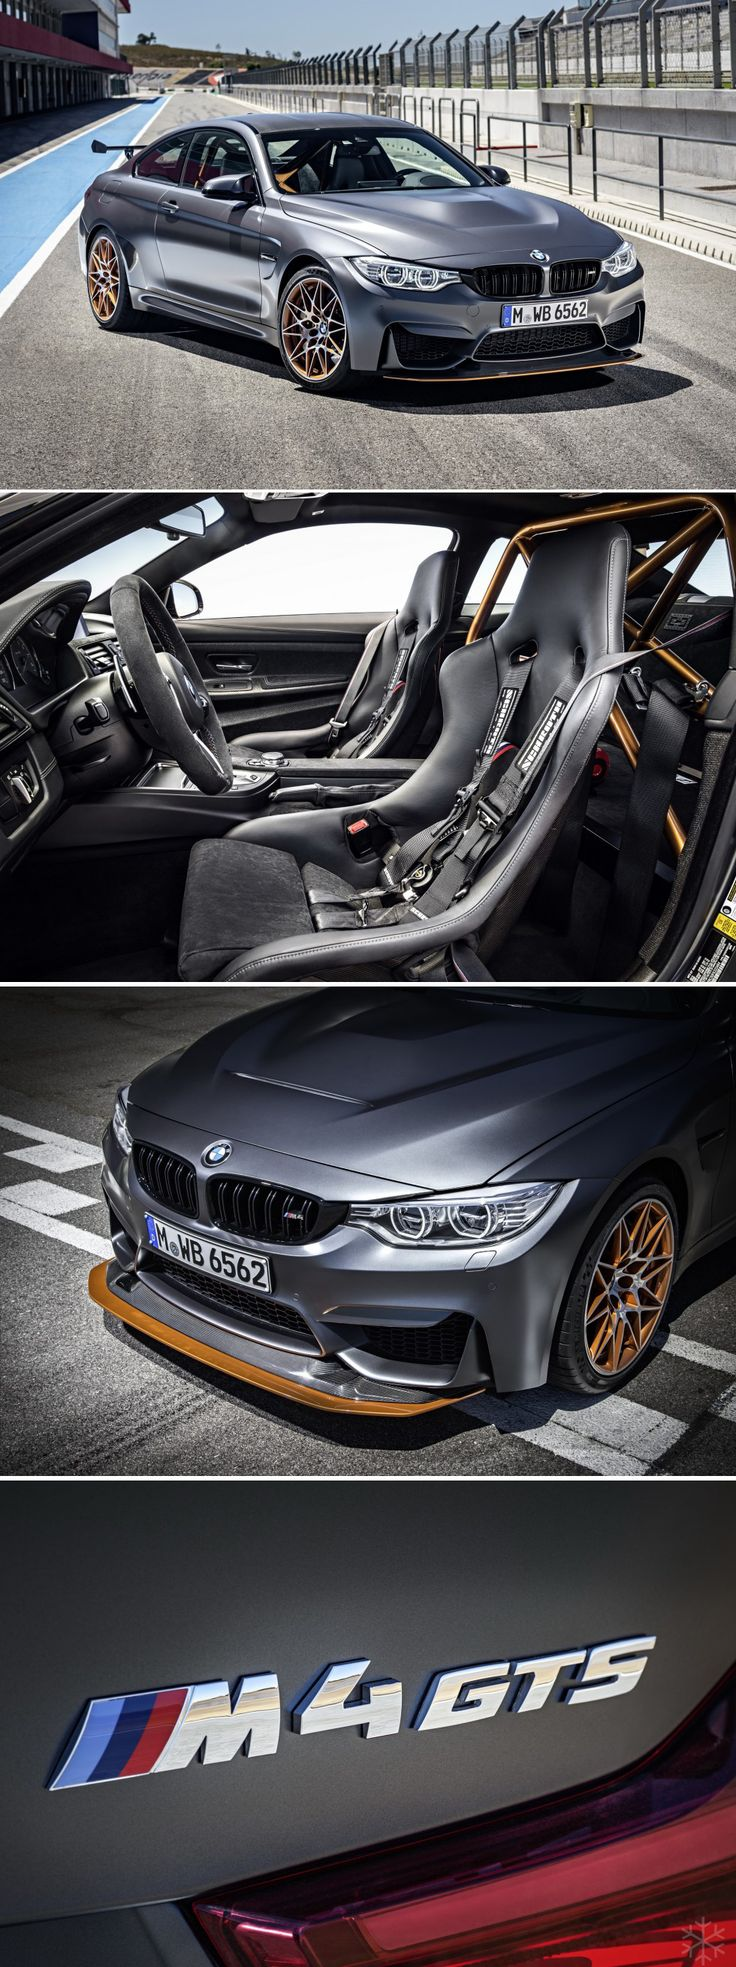 BMW M4 GTS - uprated 493bhp straight-six engine (0-62mph in 3.8s) & lightweight ...